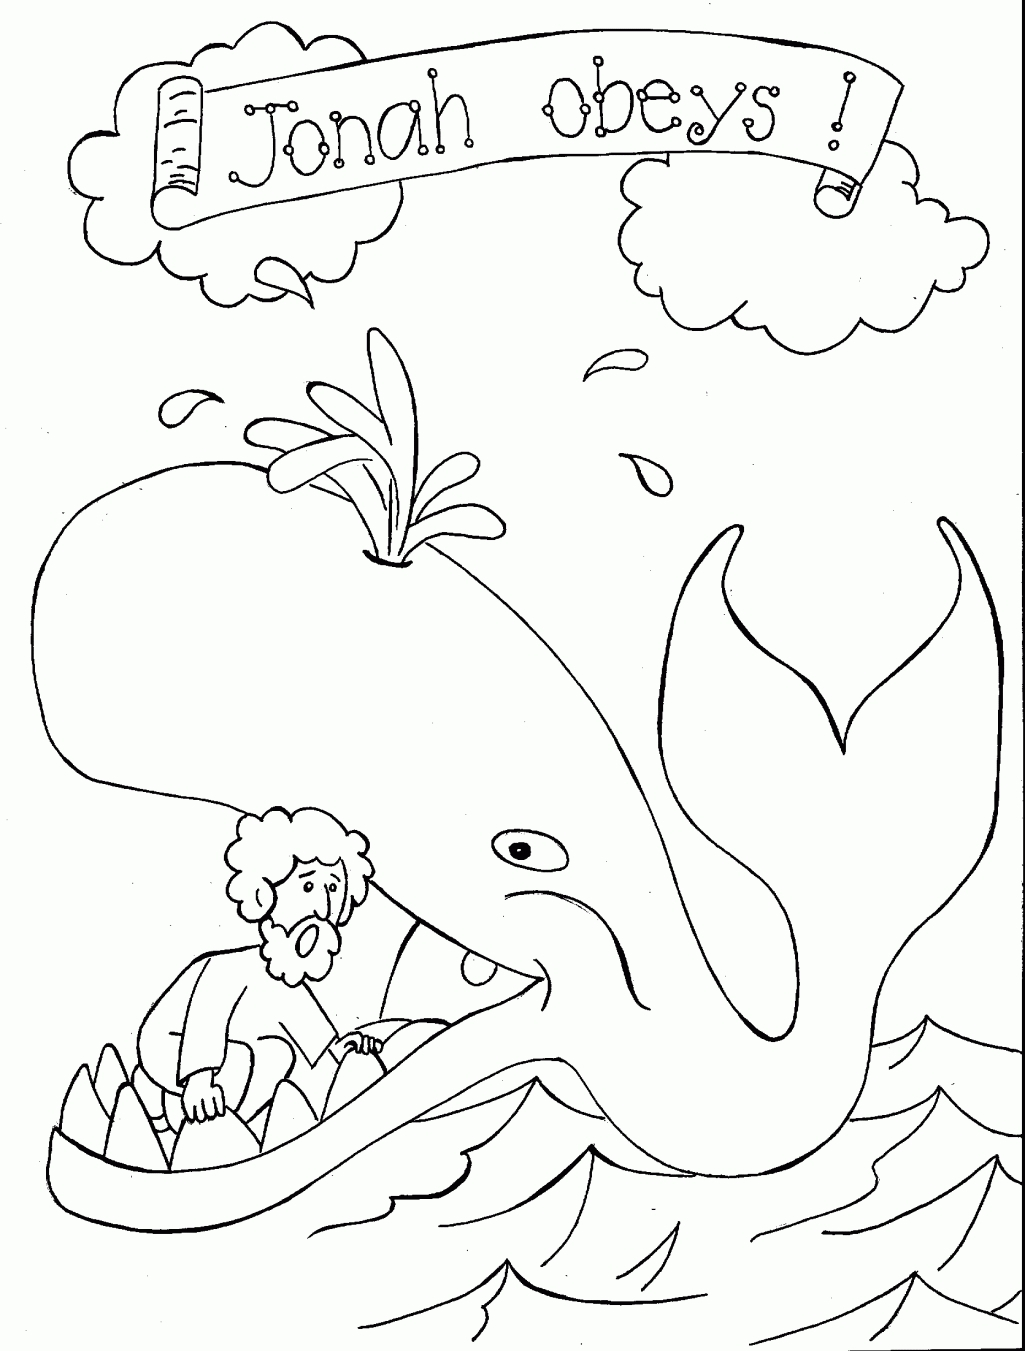 1025x1351 Awesome Bible Verse Coloring Pages Bloodbrothers Free Coloring